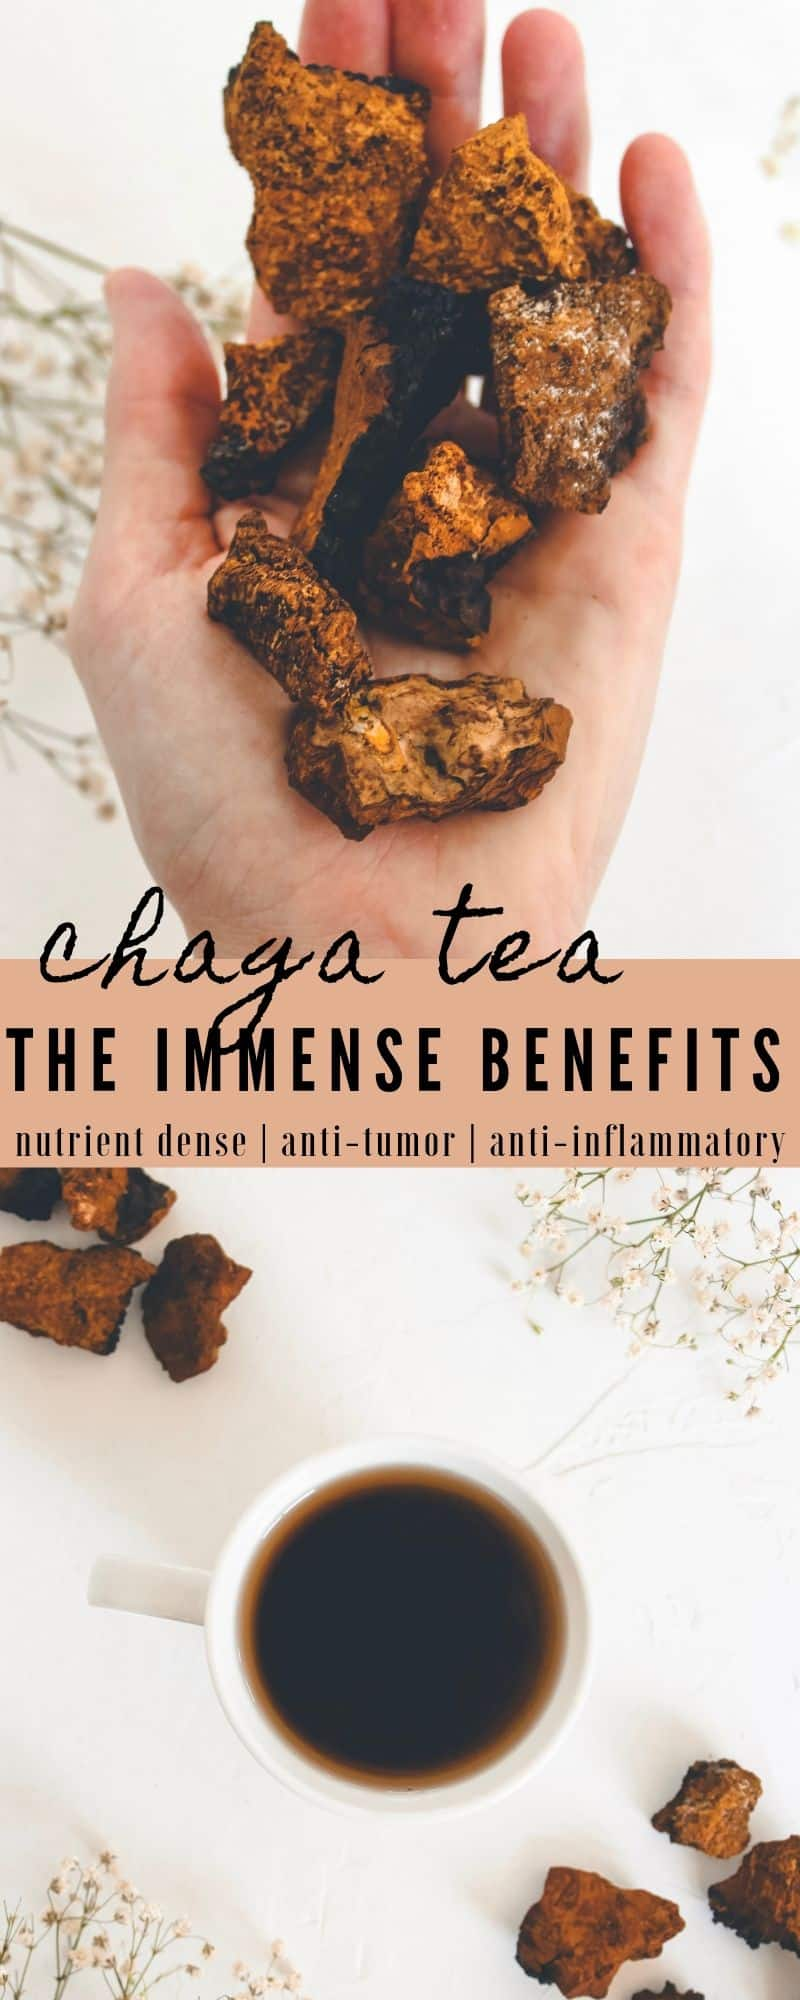 Chaga has been used for centuries due to it's mass healing capabilities. Learn how to brew chaga tea, the many benefits of the chaga mushroom, & more!